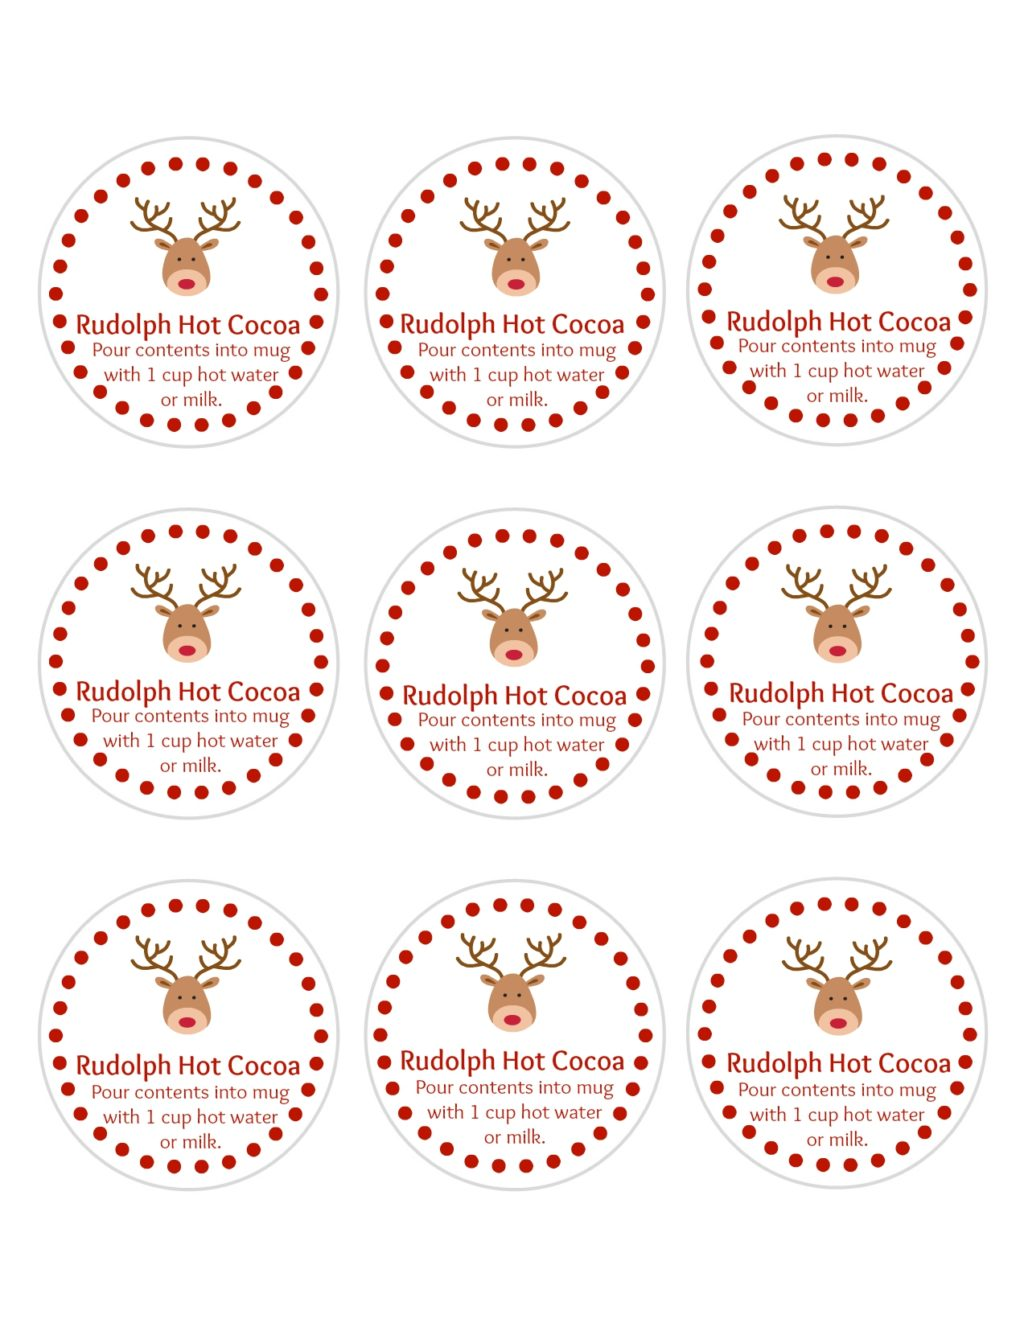 DIY Rudolph Hot Cocoa Holiday Gifts Free printable gift tags